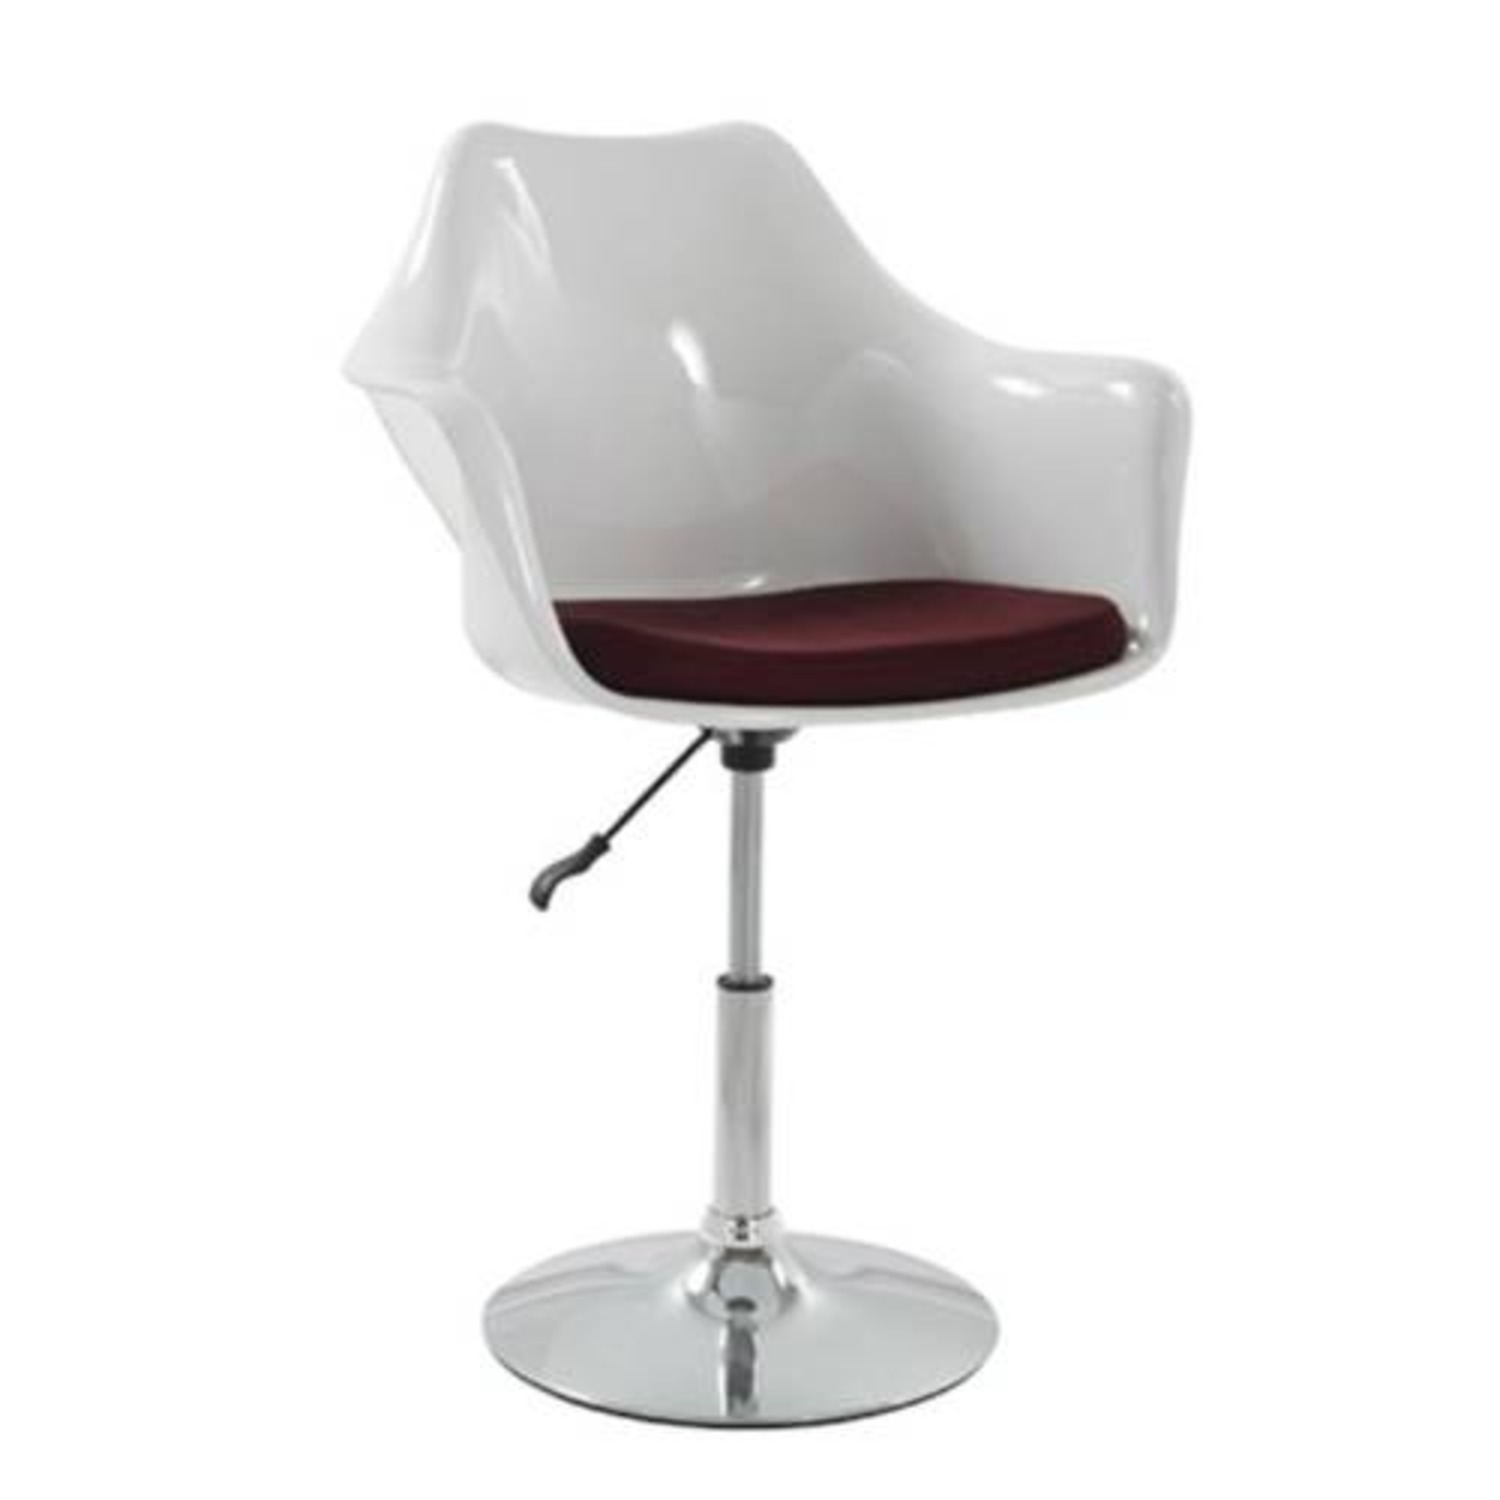 Height-Adjustable Swivel Arm Chair In White ABS - image-2